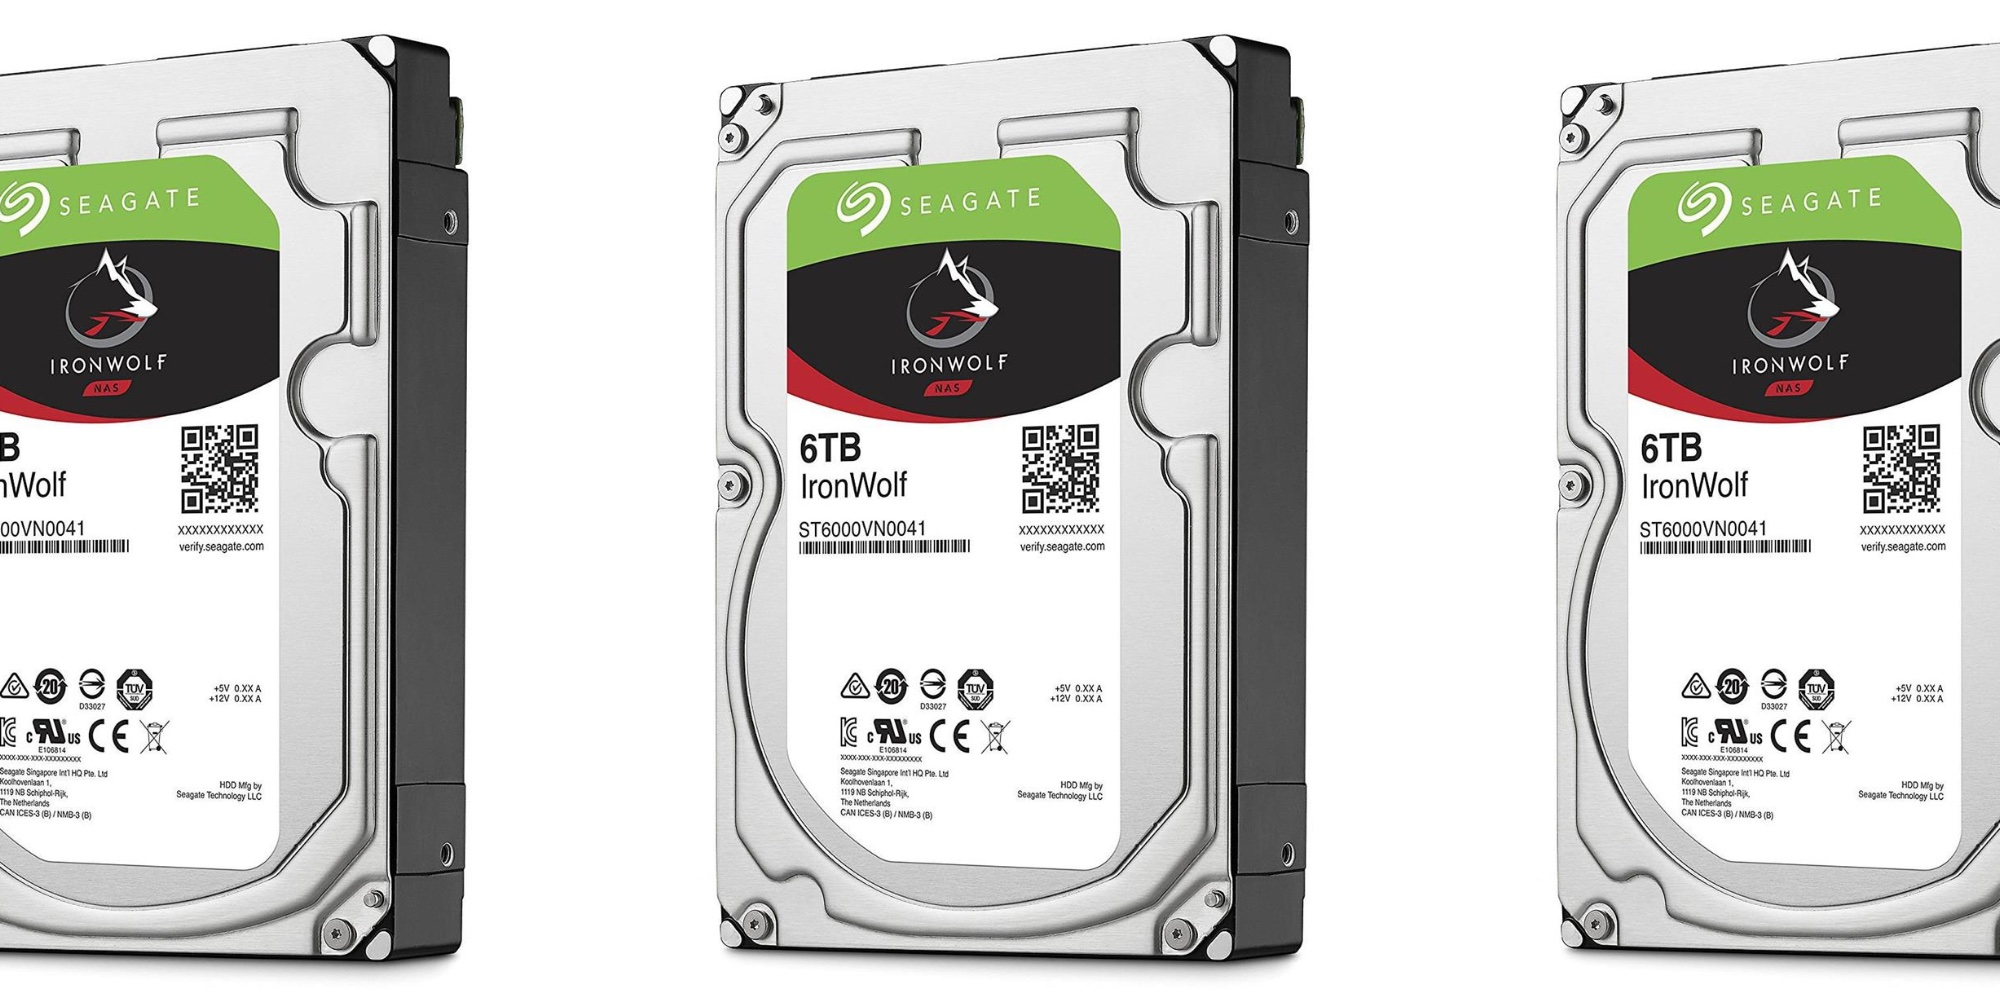 Seagate S Ironwolf 6tb Nas Hard Drive Drops To 2019 Low At 140 40 Off 9to5toys